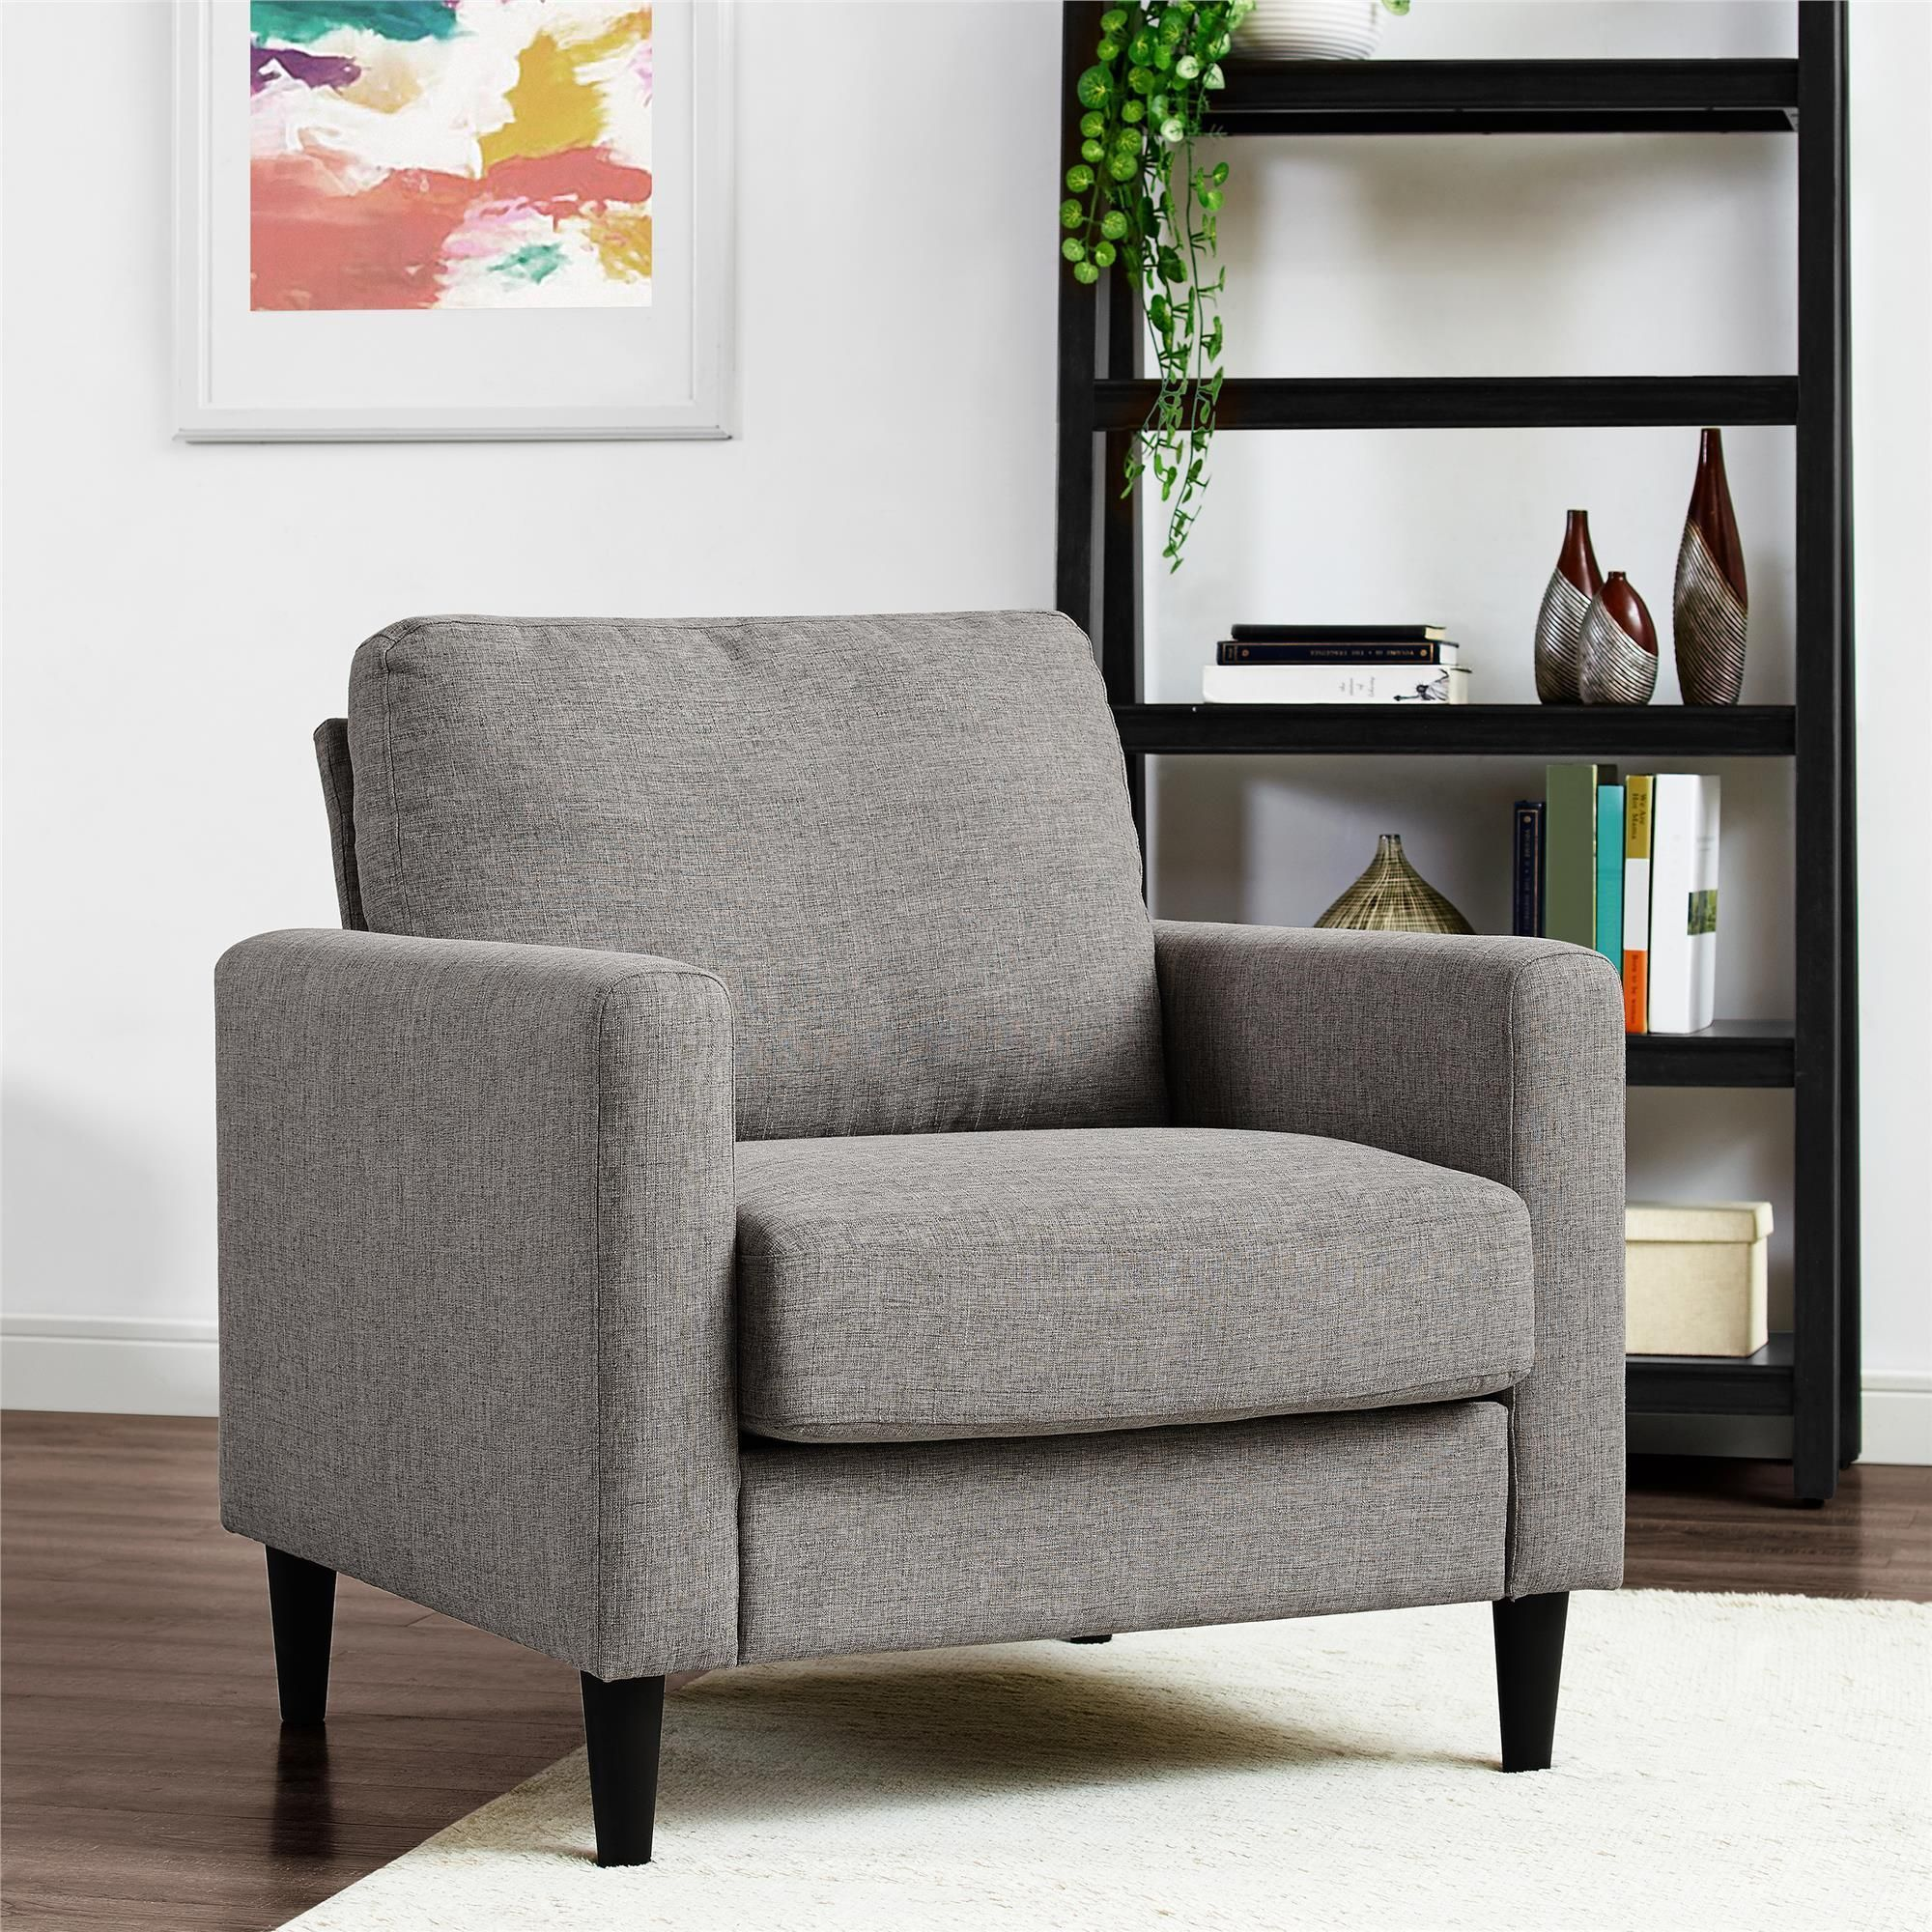 Classic Lines And Contemporary Design Make The Dorel Living Kaci Chair A  Timeless Piece For Living Rooms And Seating Areas. This Small Spaces Chair  Is The ...